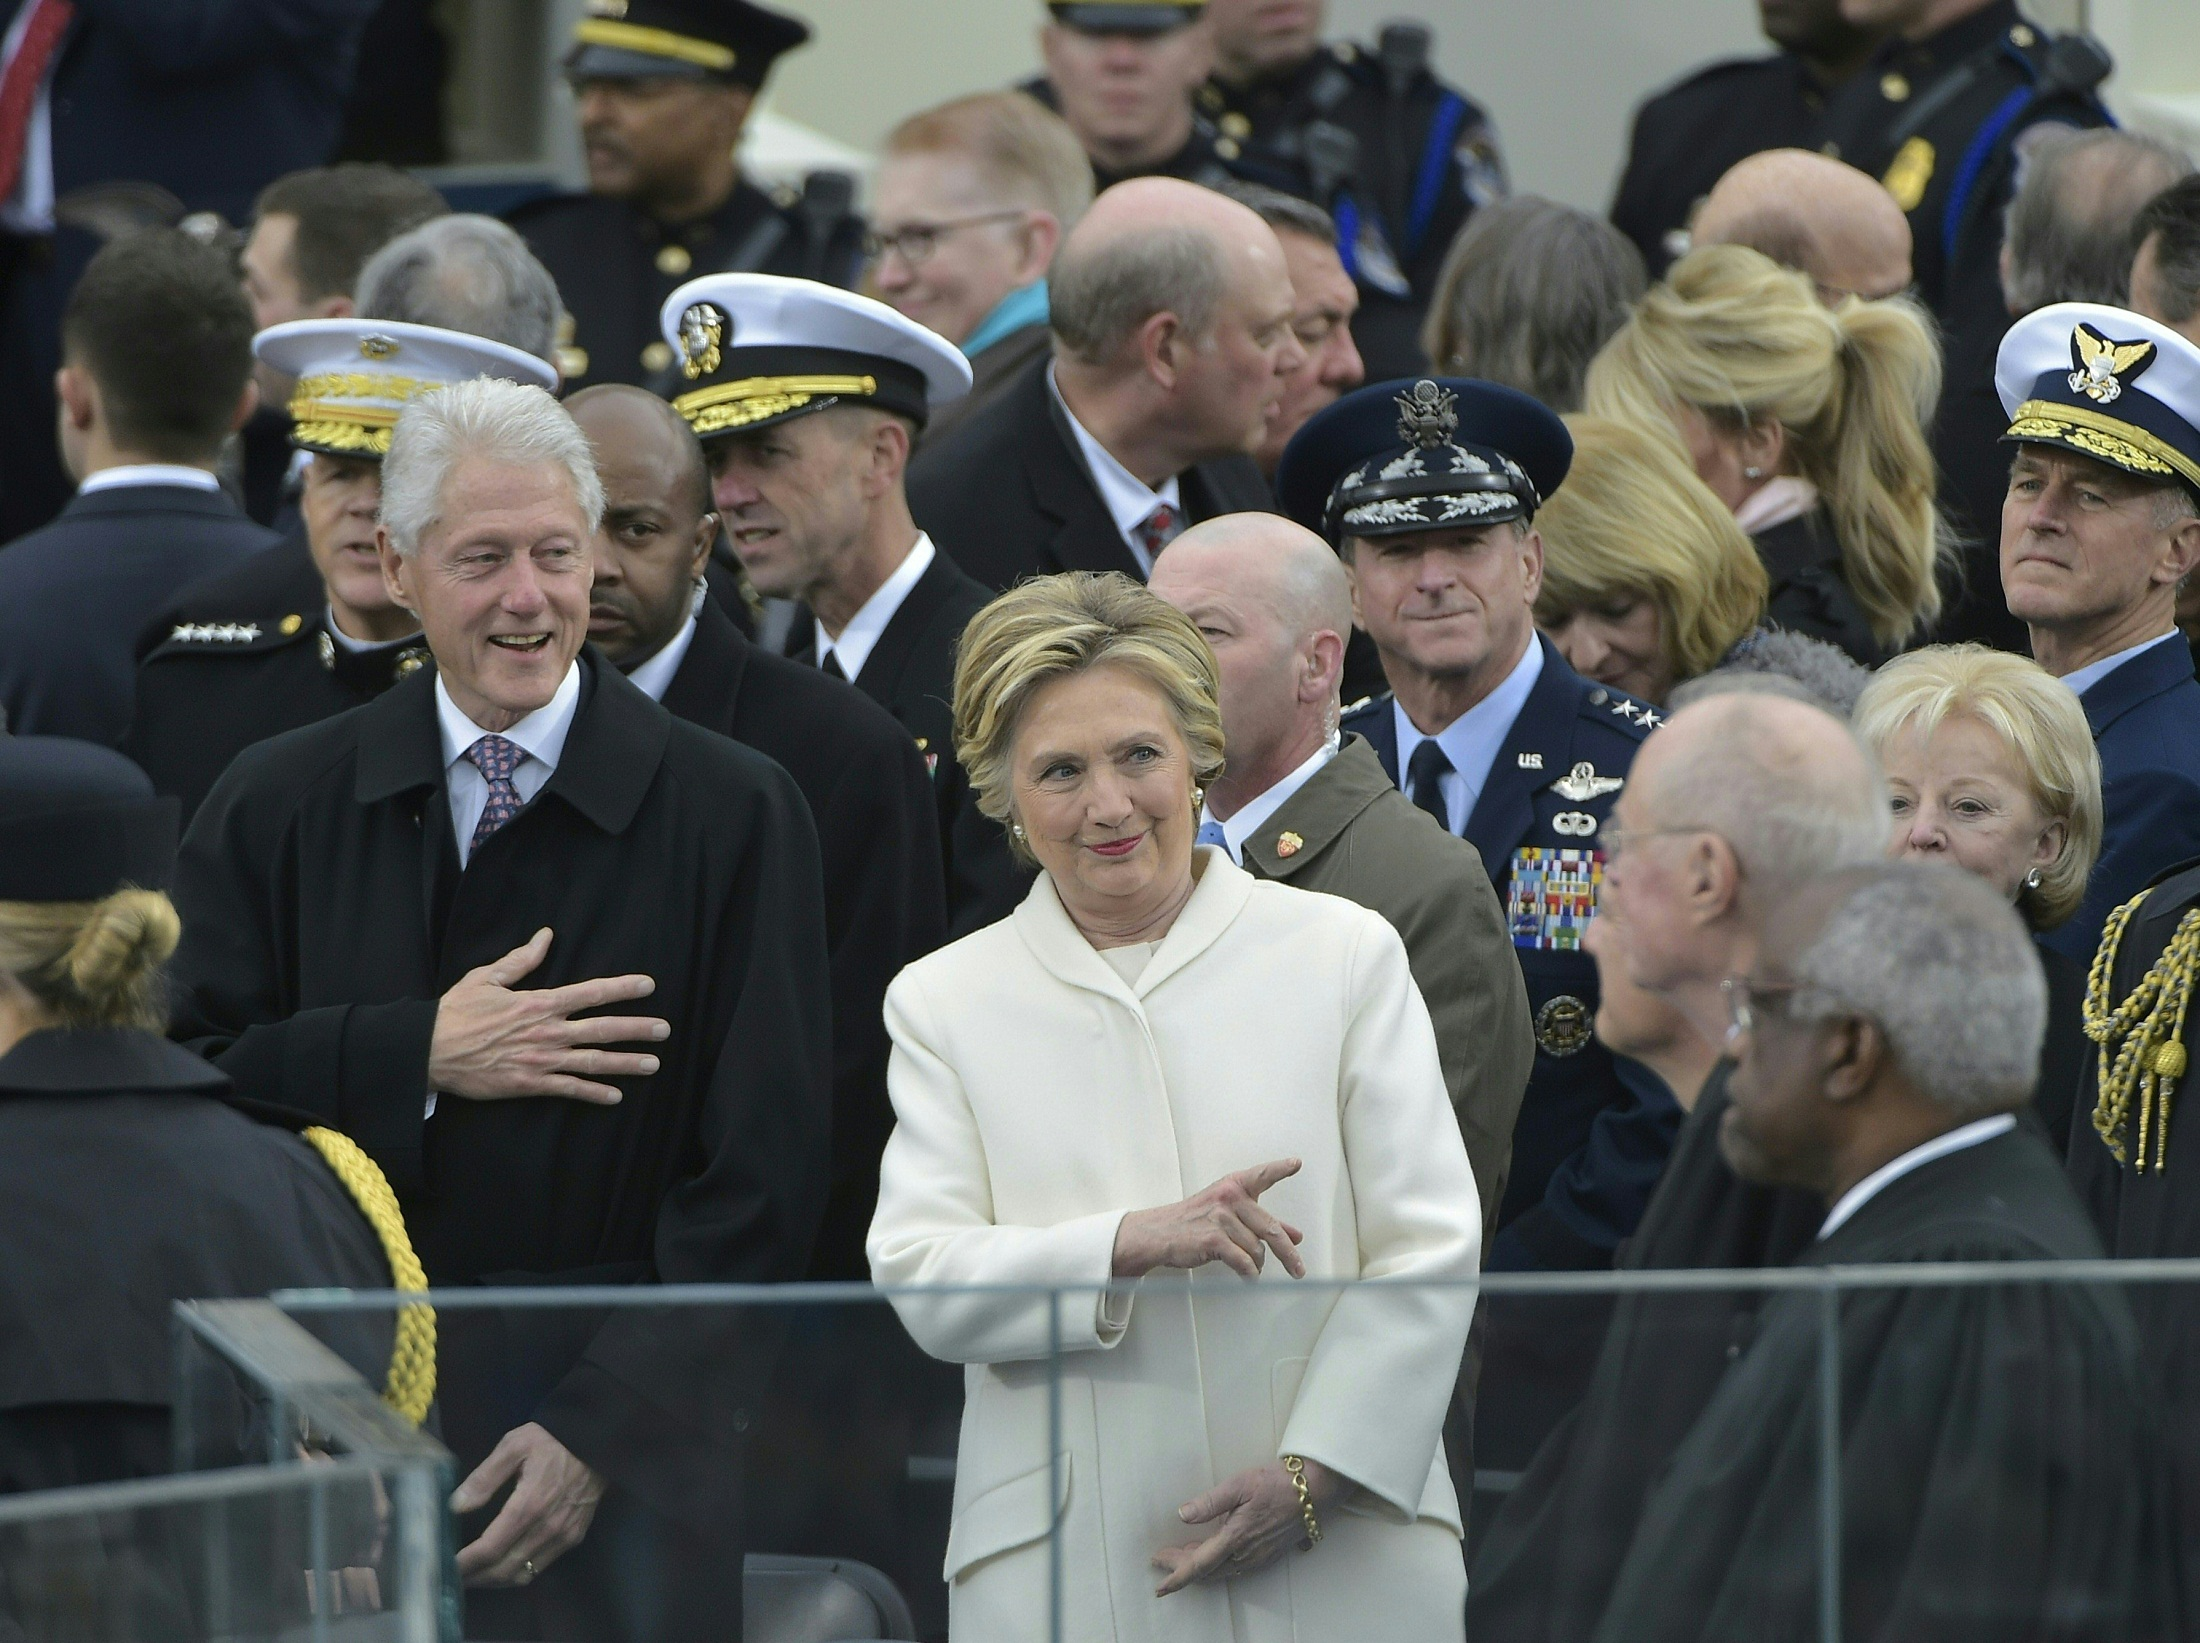 Former Democratic presidential candidate Hillary Clinton and former president Bill Clinton are seen amidst guests on the platform at the US Capitol in Washington, DC, on January 20, 2017, before the swearing-in ceremony of US President-elect Donald Trump. / AFP PHOTO / Mandel NGAN